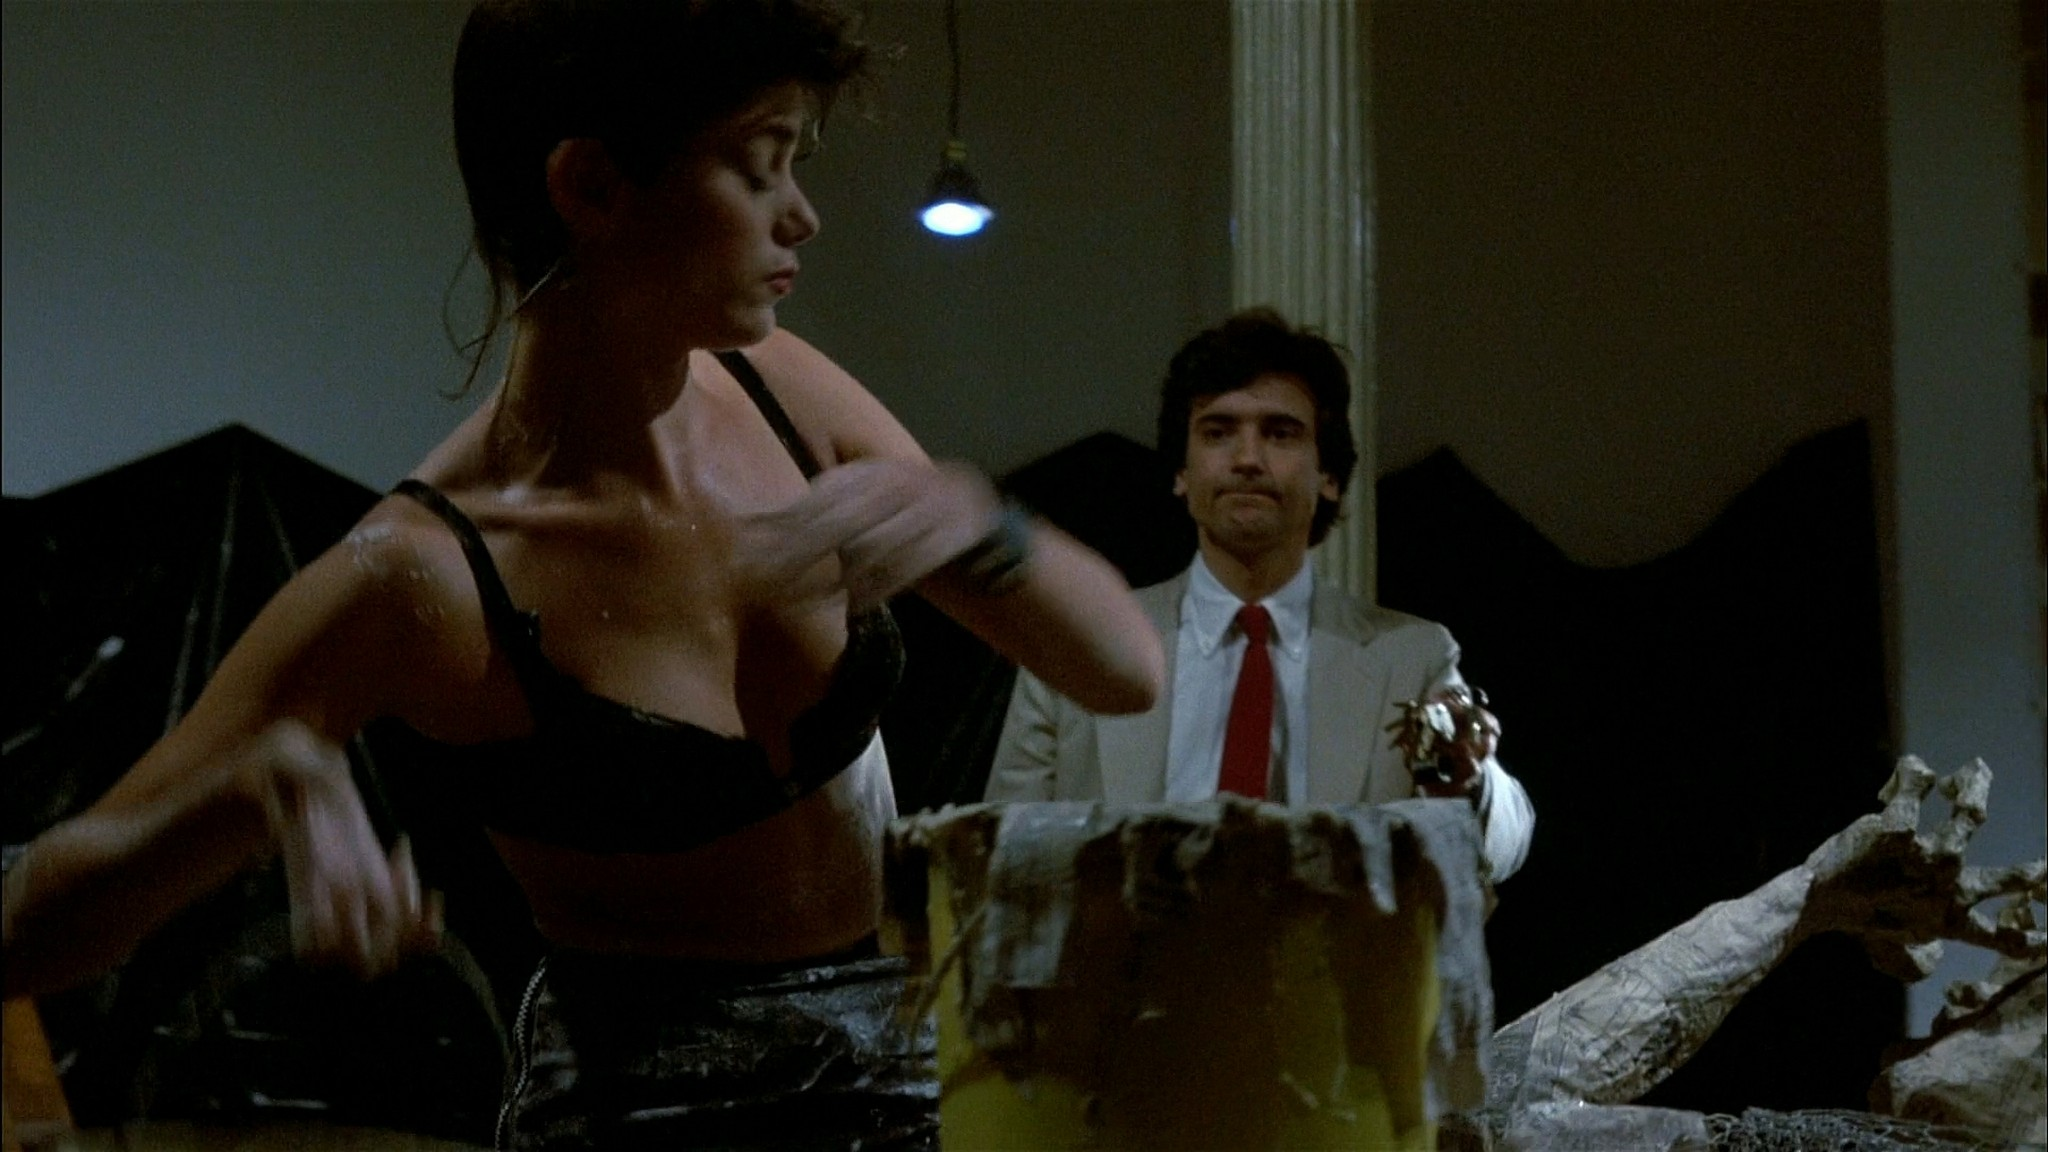 Linda Fiorentino nude Rosanna Arquette hot and sexy - After Hours (1985) HD 1080p BluRay (13)